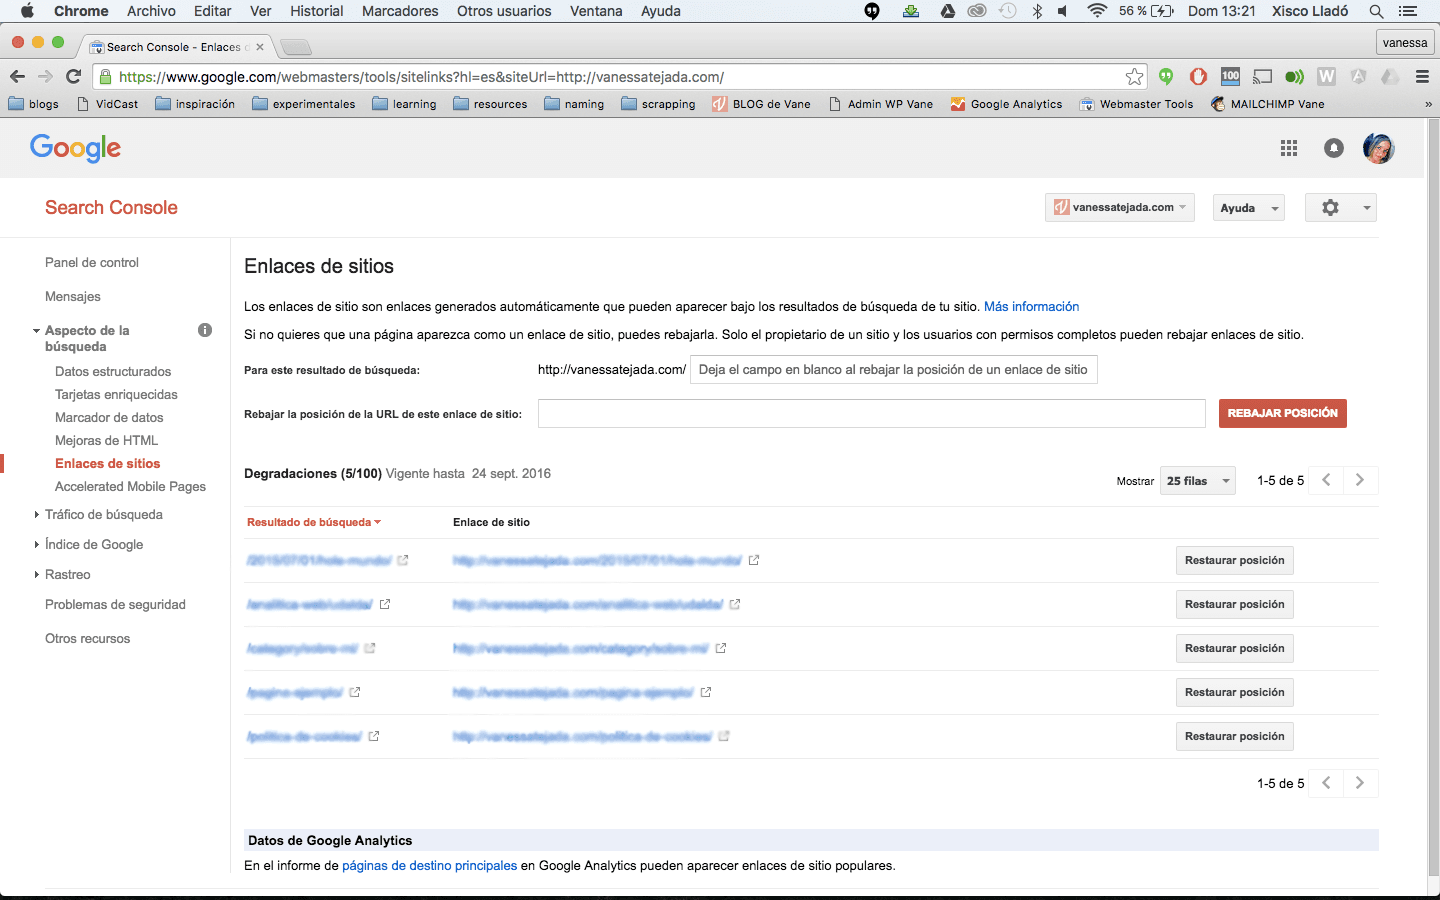 enlaces de sitio webmaster tools